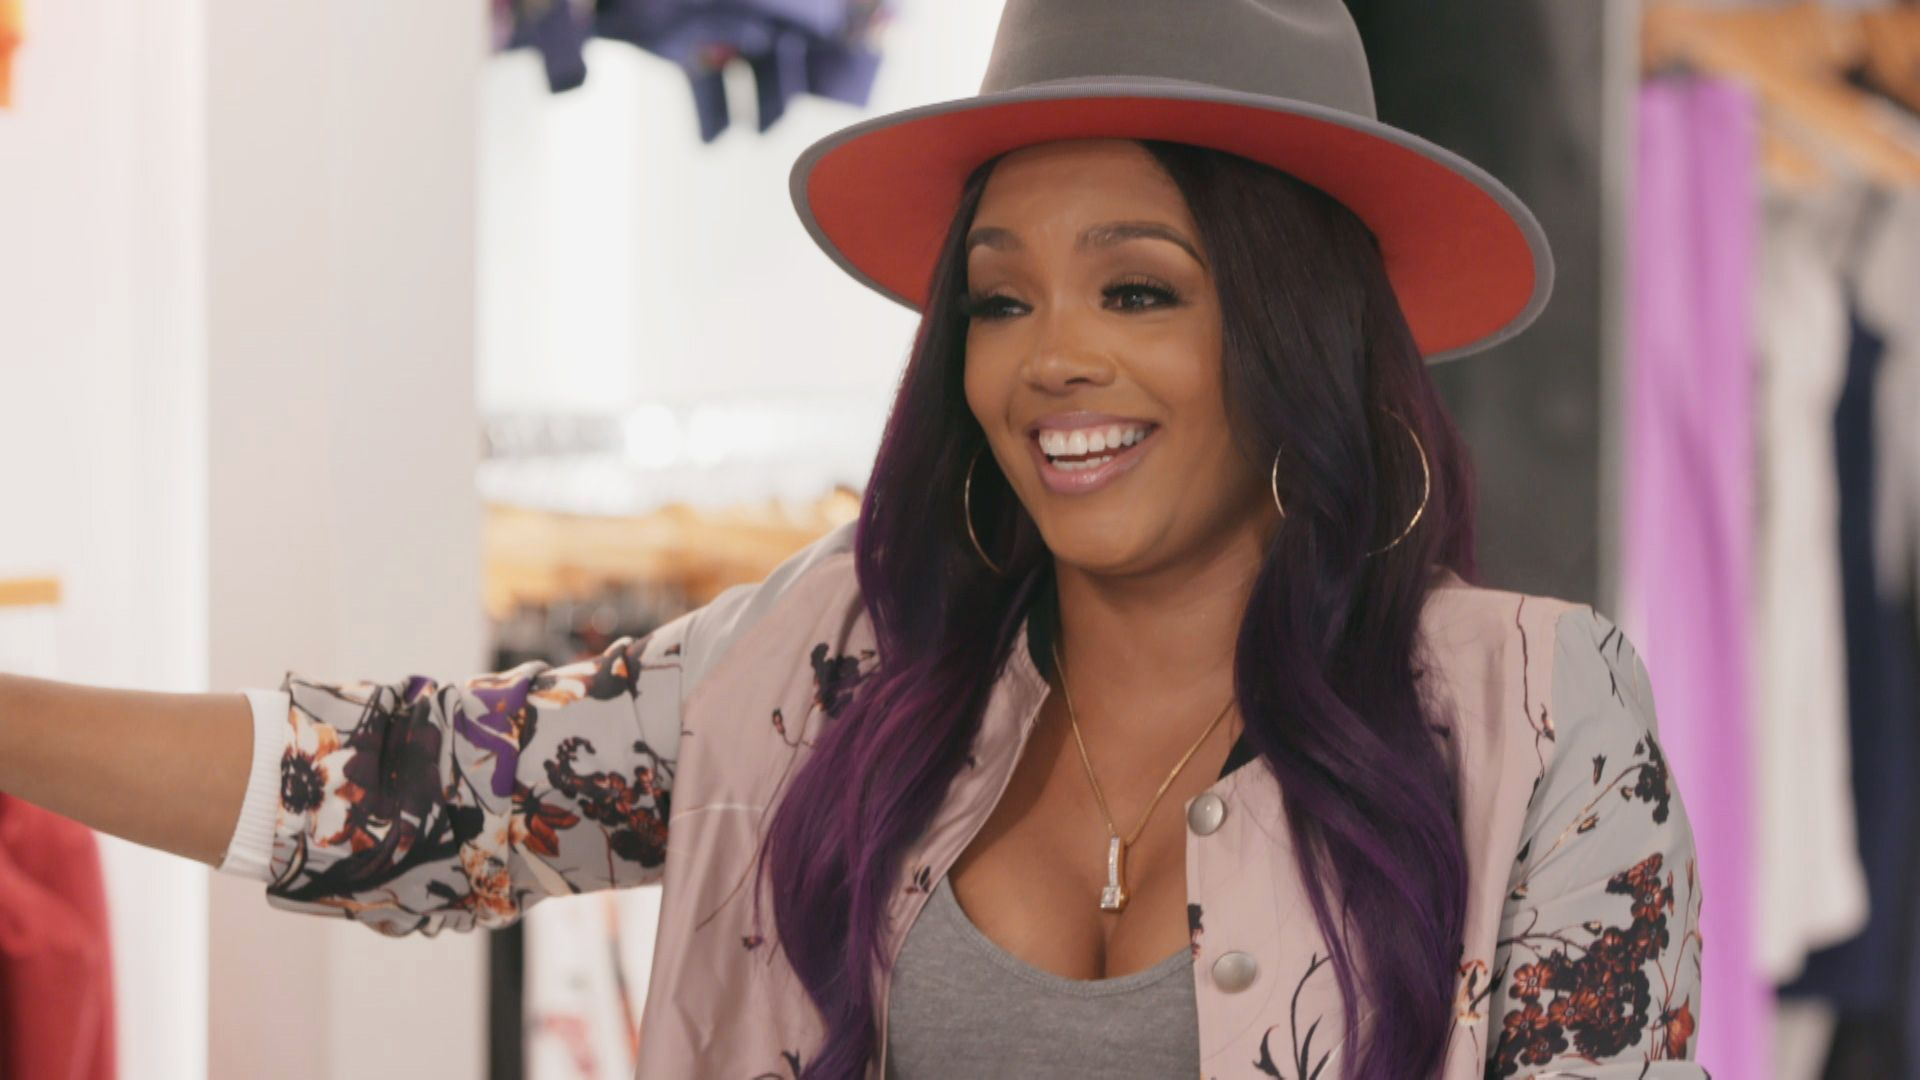 Rasheeda Frost Is Labeled As A 'Power Magnet' As She Shares Pics From The Women's Conference: 'You Should Be A Celebrity Stylist'